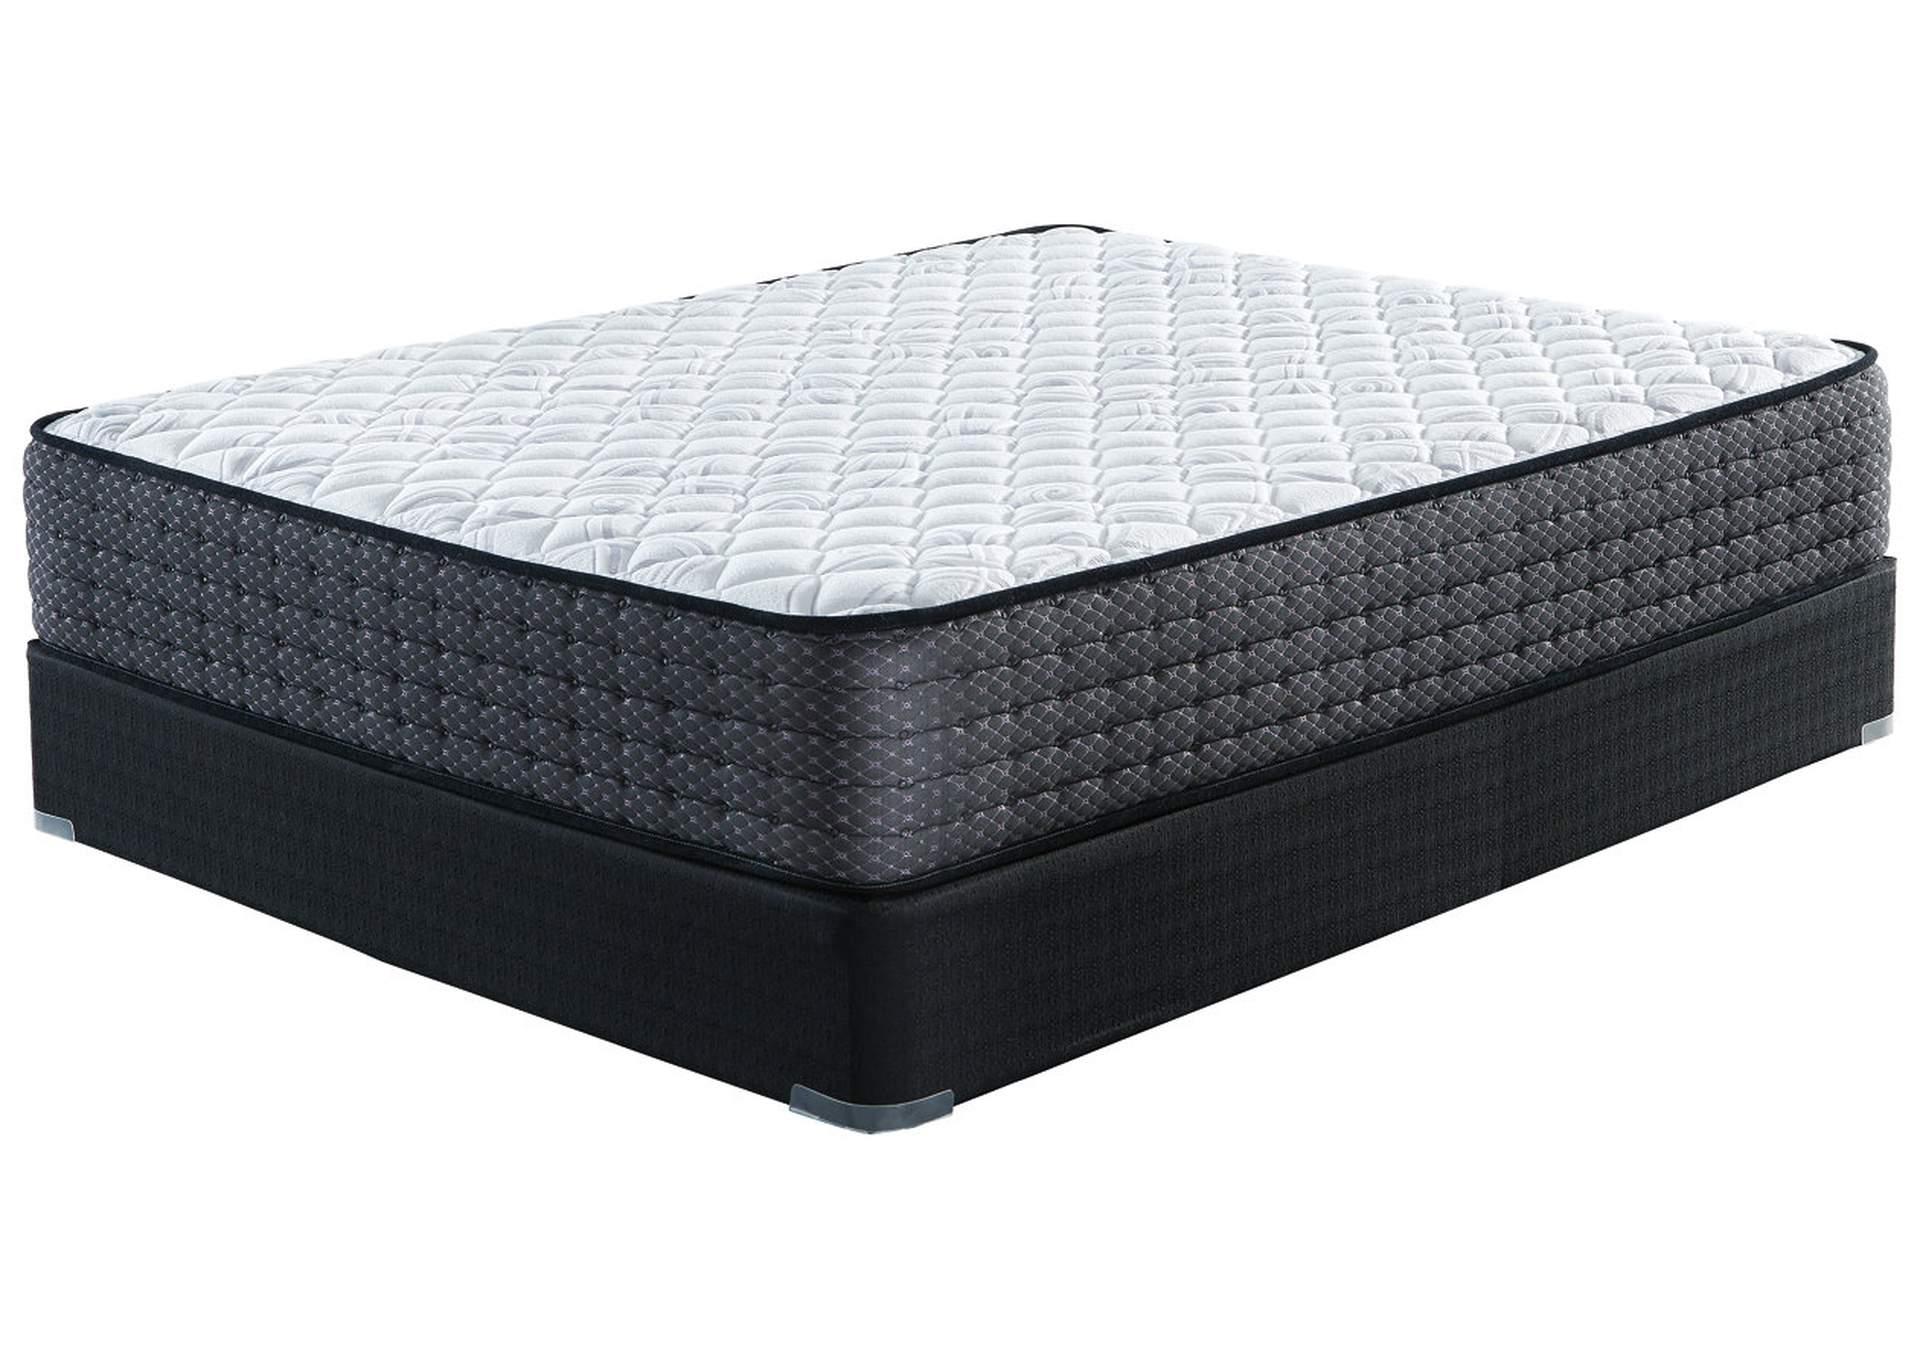 Limited Edition White Firm King Mattress,Direct To Consumer Express